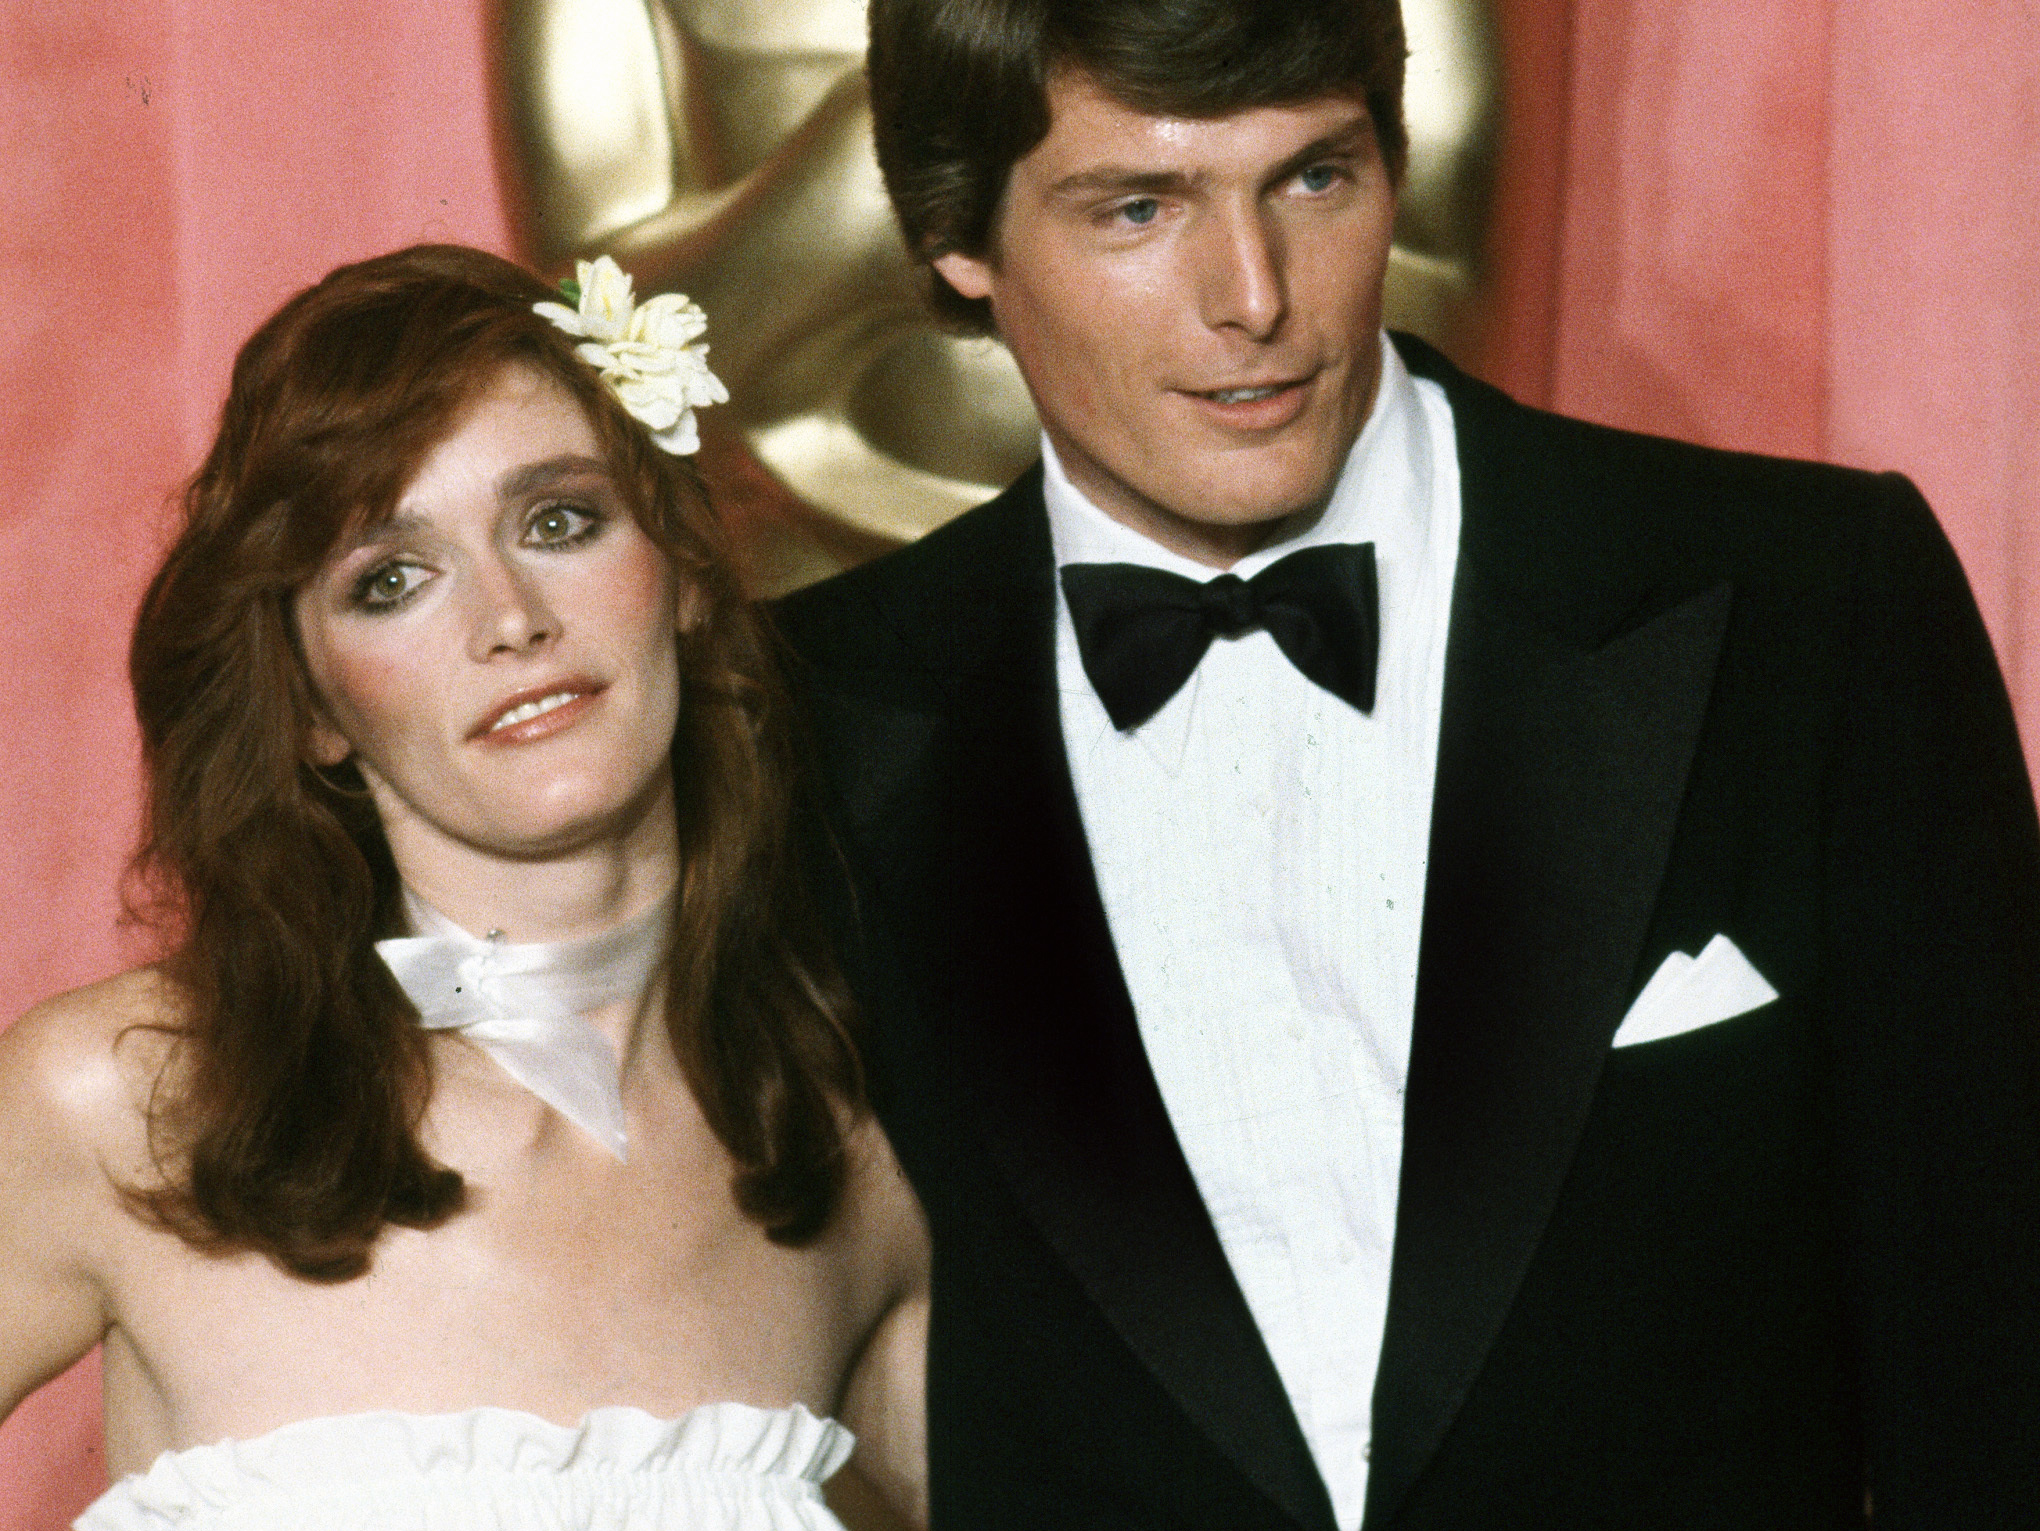 Actress Margot Kidder is seen here with her Superman co-star Christopher Reeve